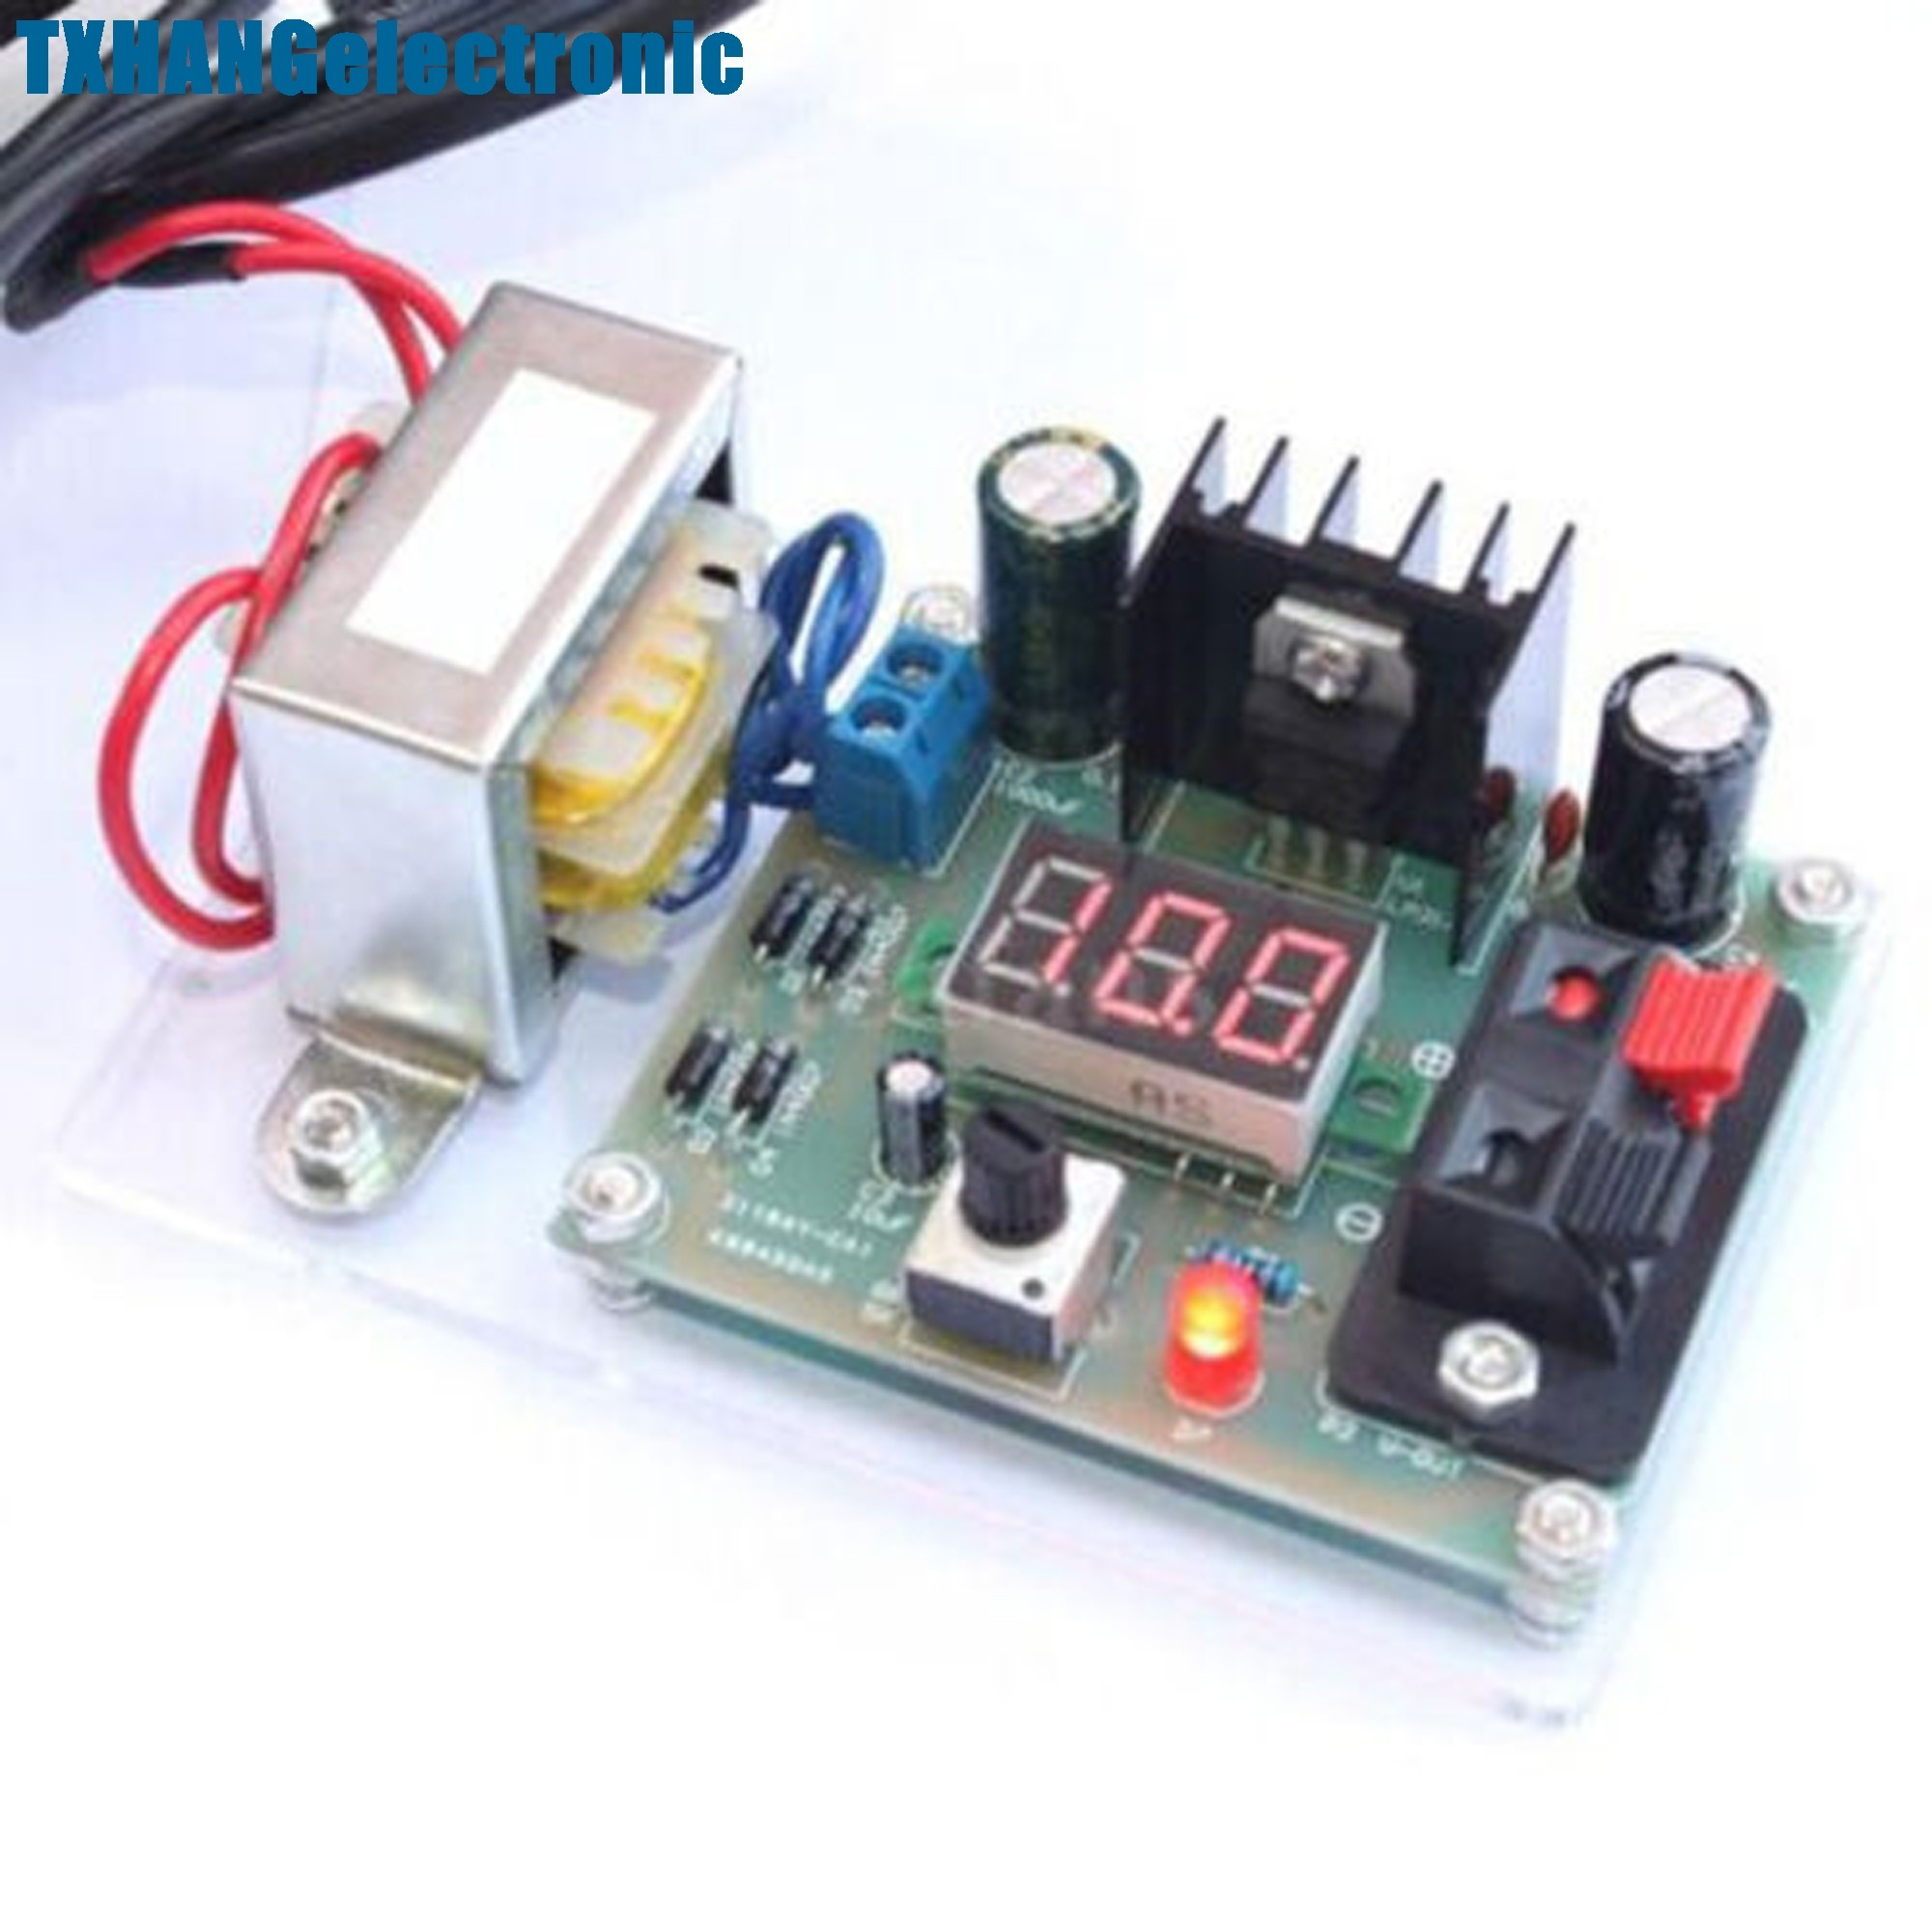 Online Shop Lm317 Digital Display Adjustable Regulated Power Supply Simple Dc With Overcurrent Continuously Diy Kit 125 12v